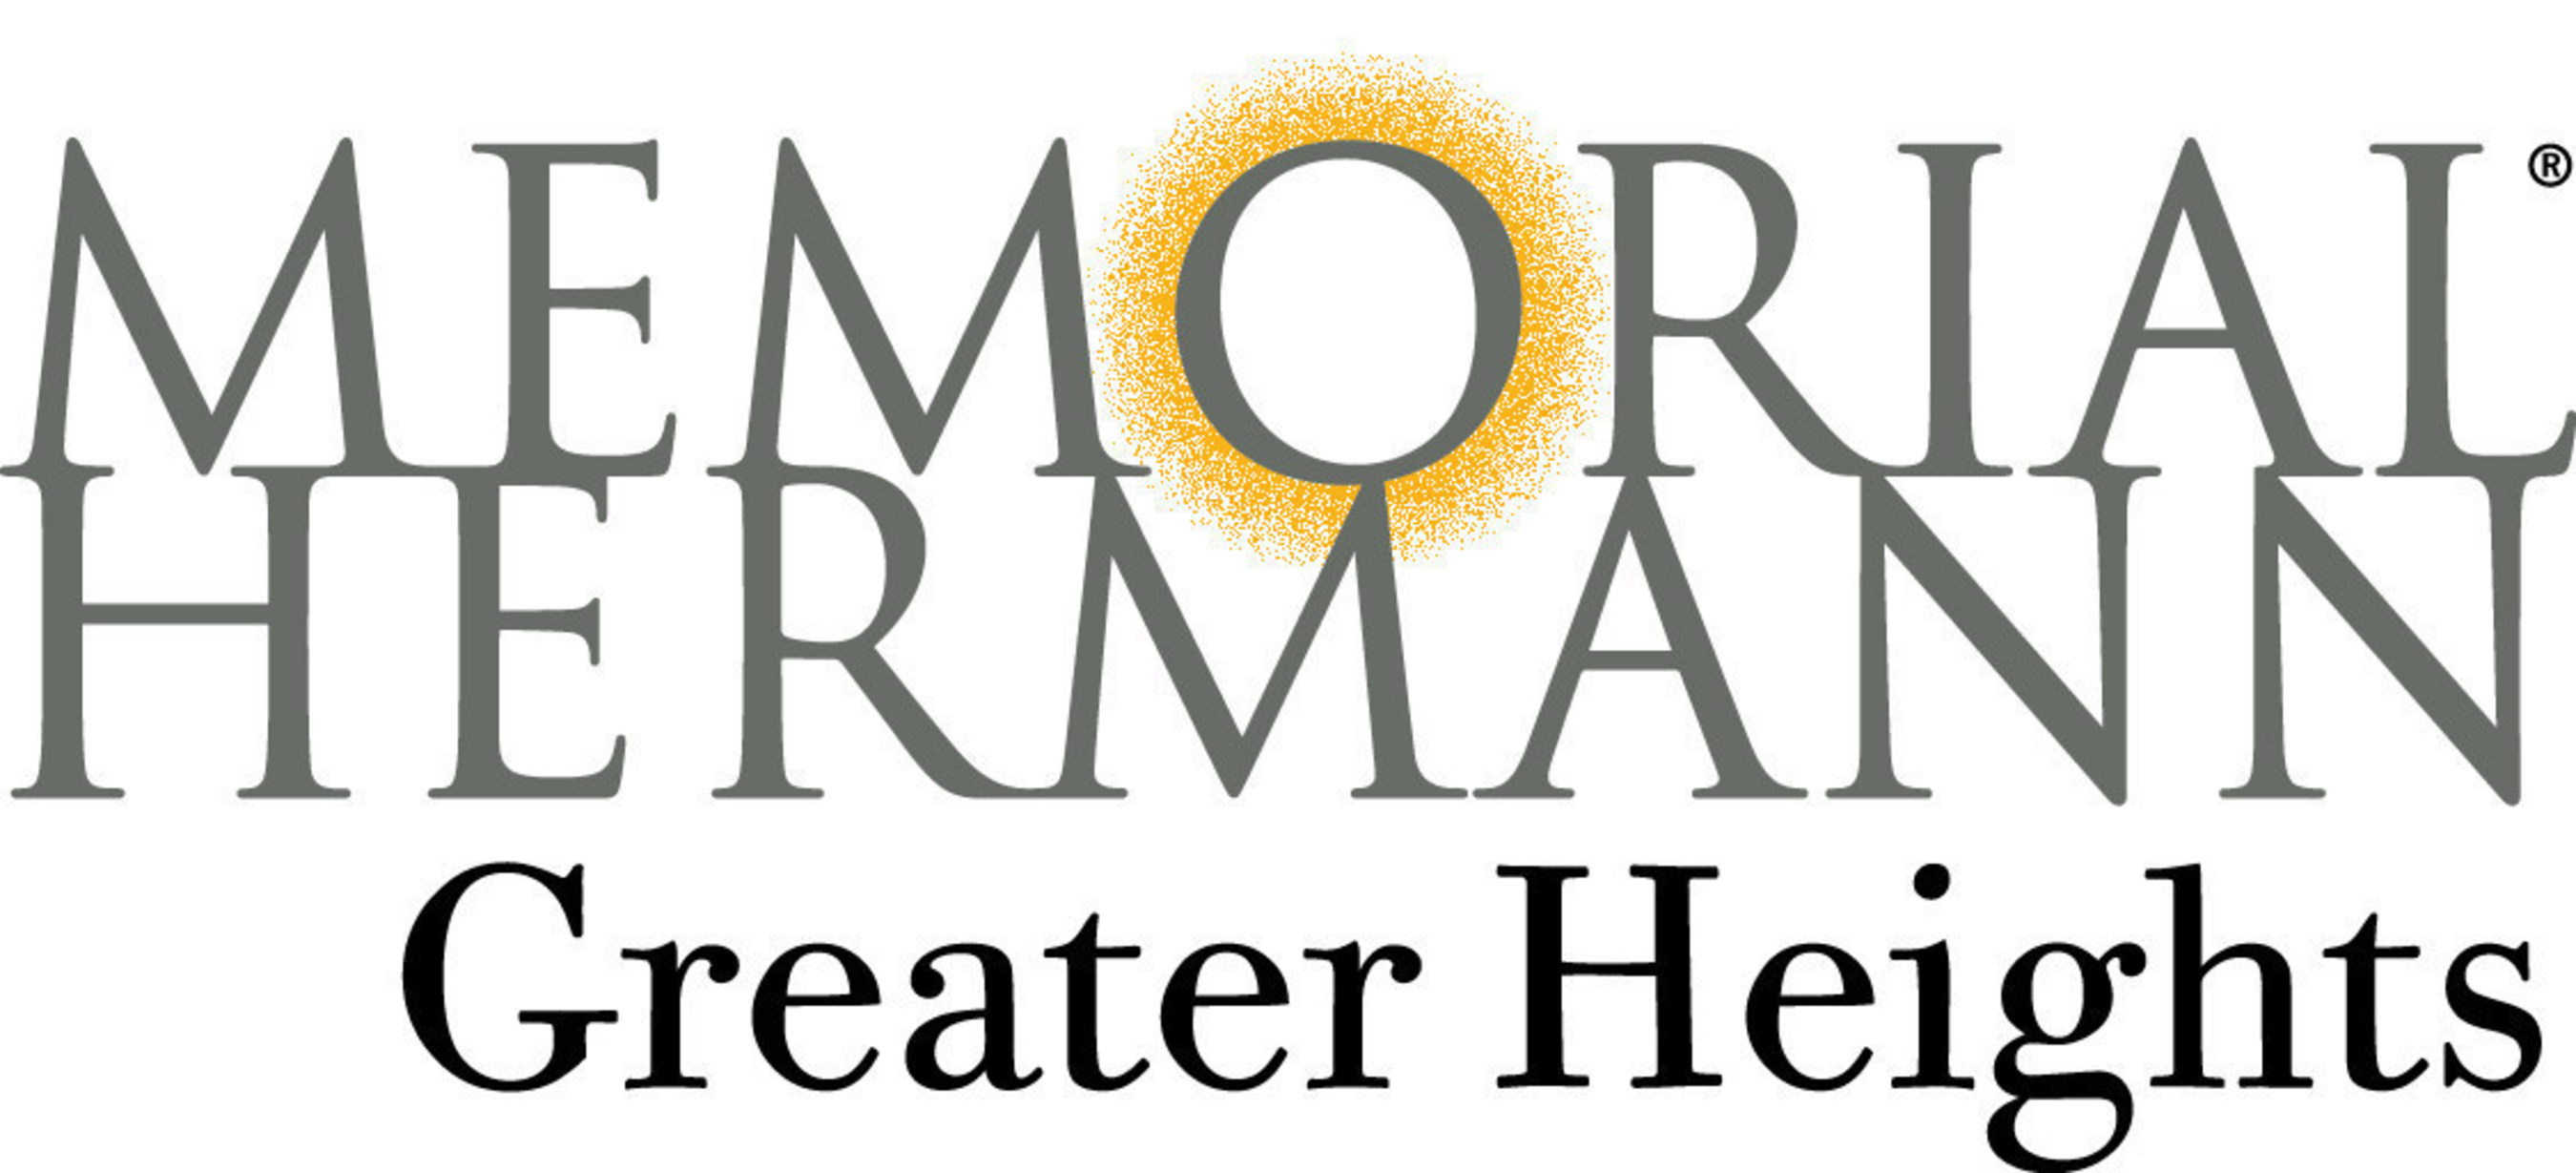 Quality Healthcare Has a New Name: Memorial Hermann Greater